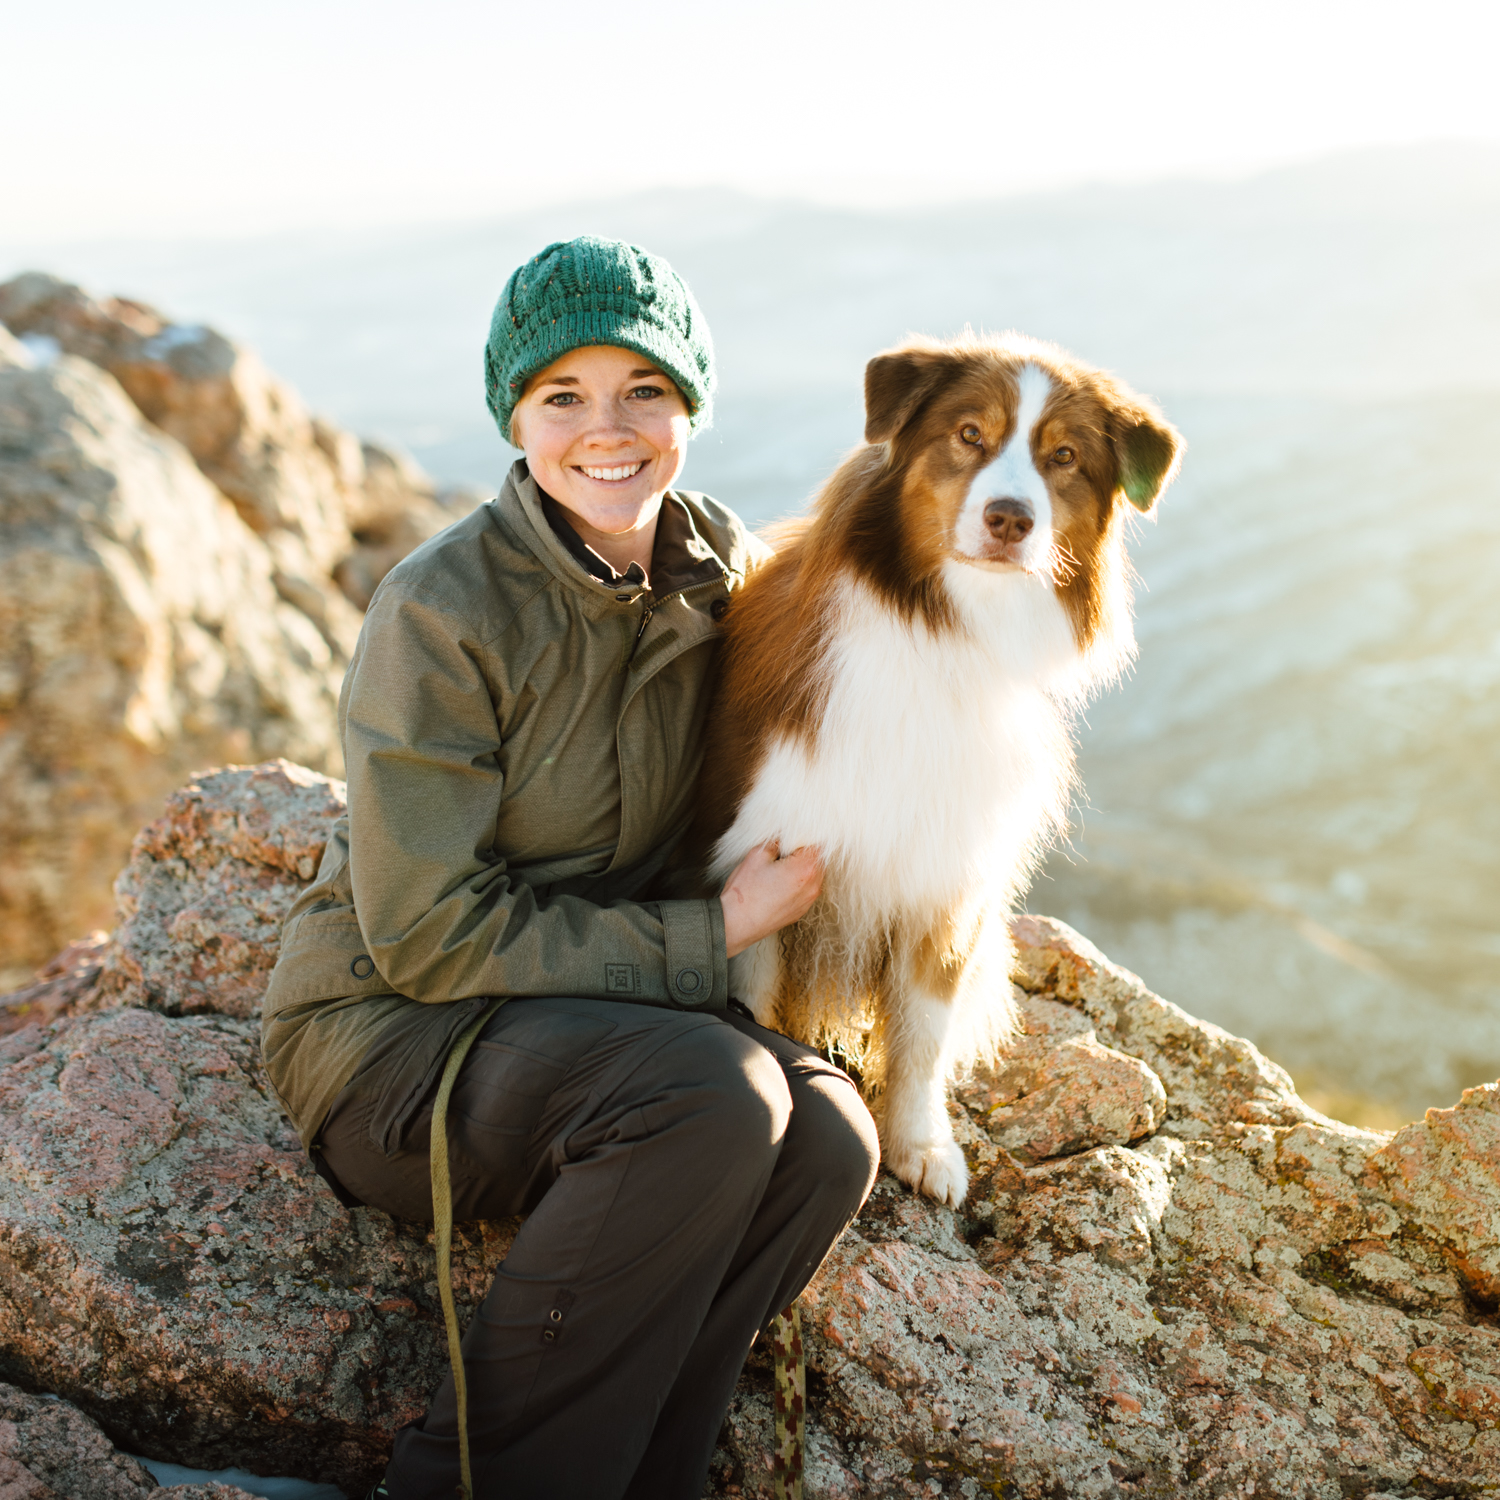 summit-dog-training-amber-quann-fort-collins-positive-dog-education